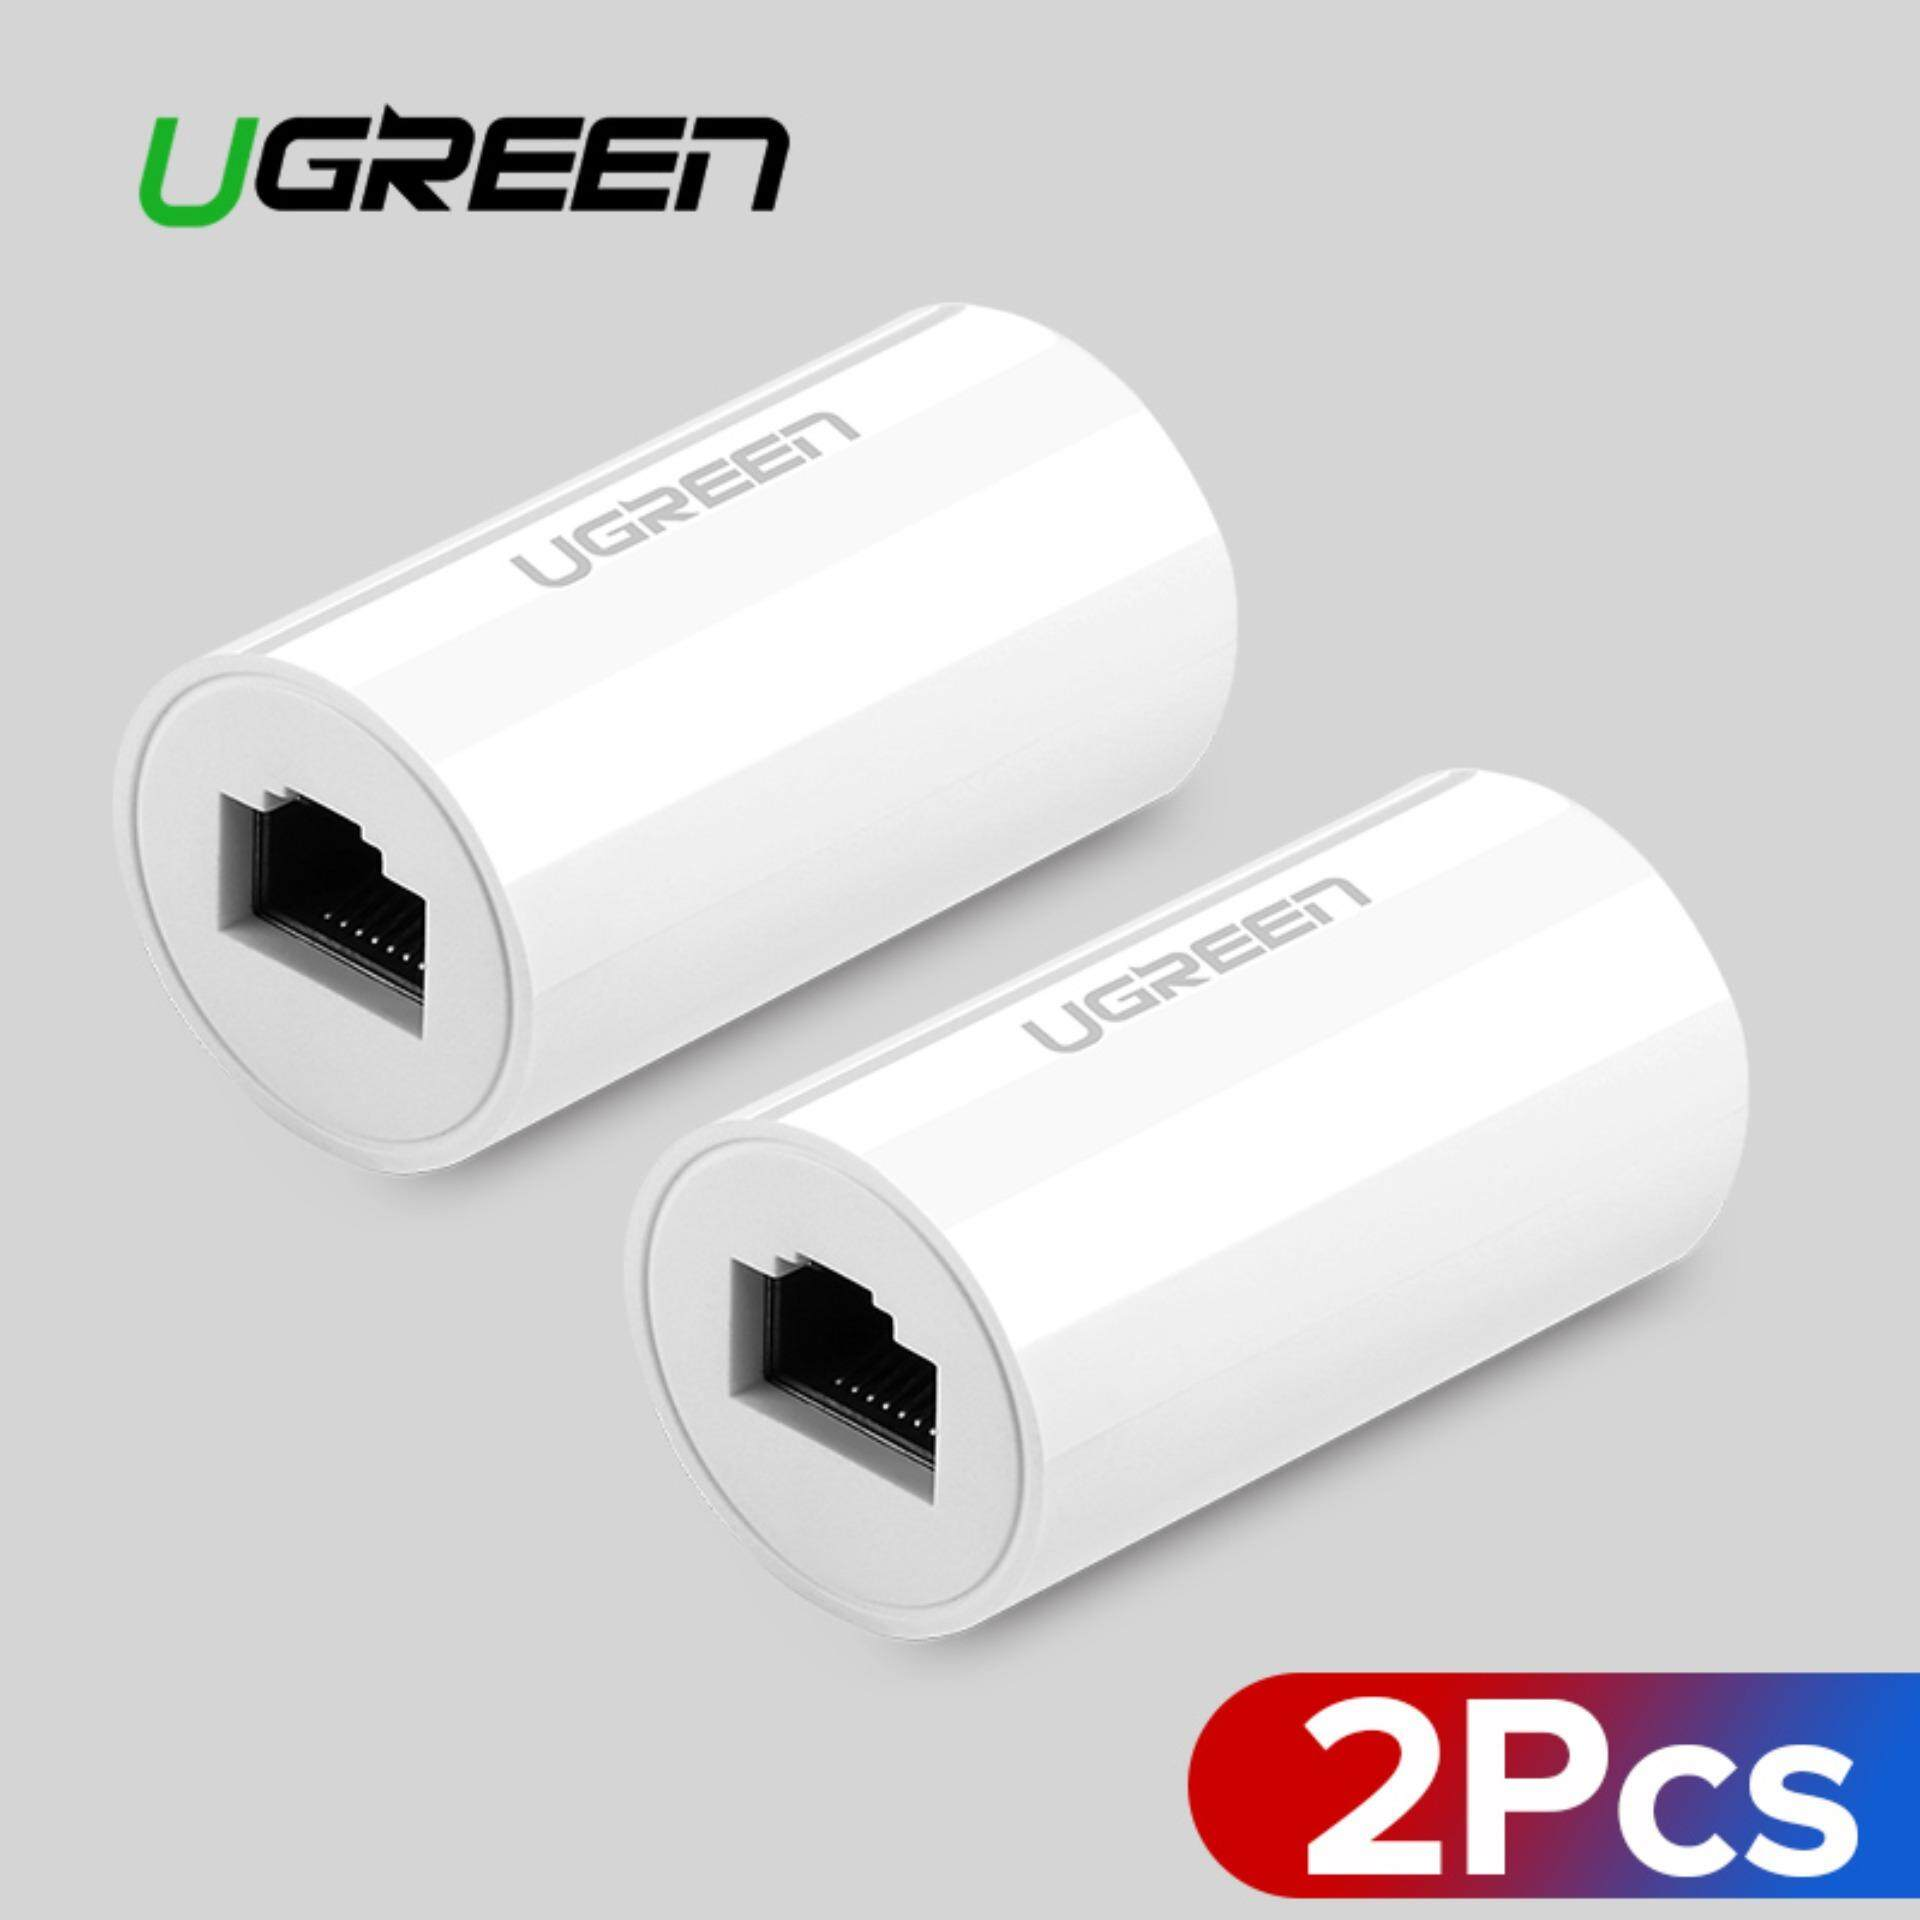 Ugreen 2pack Thunder Protection Cat6 Rj45 Network Cable Connector By Ugreen Flagship Store